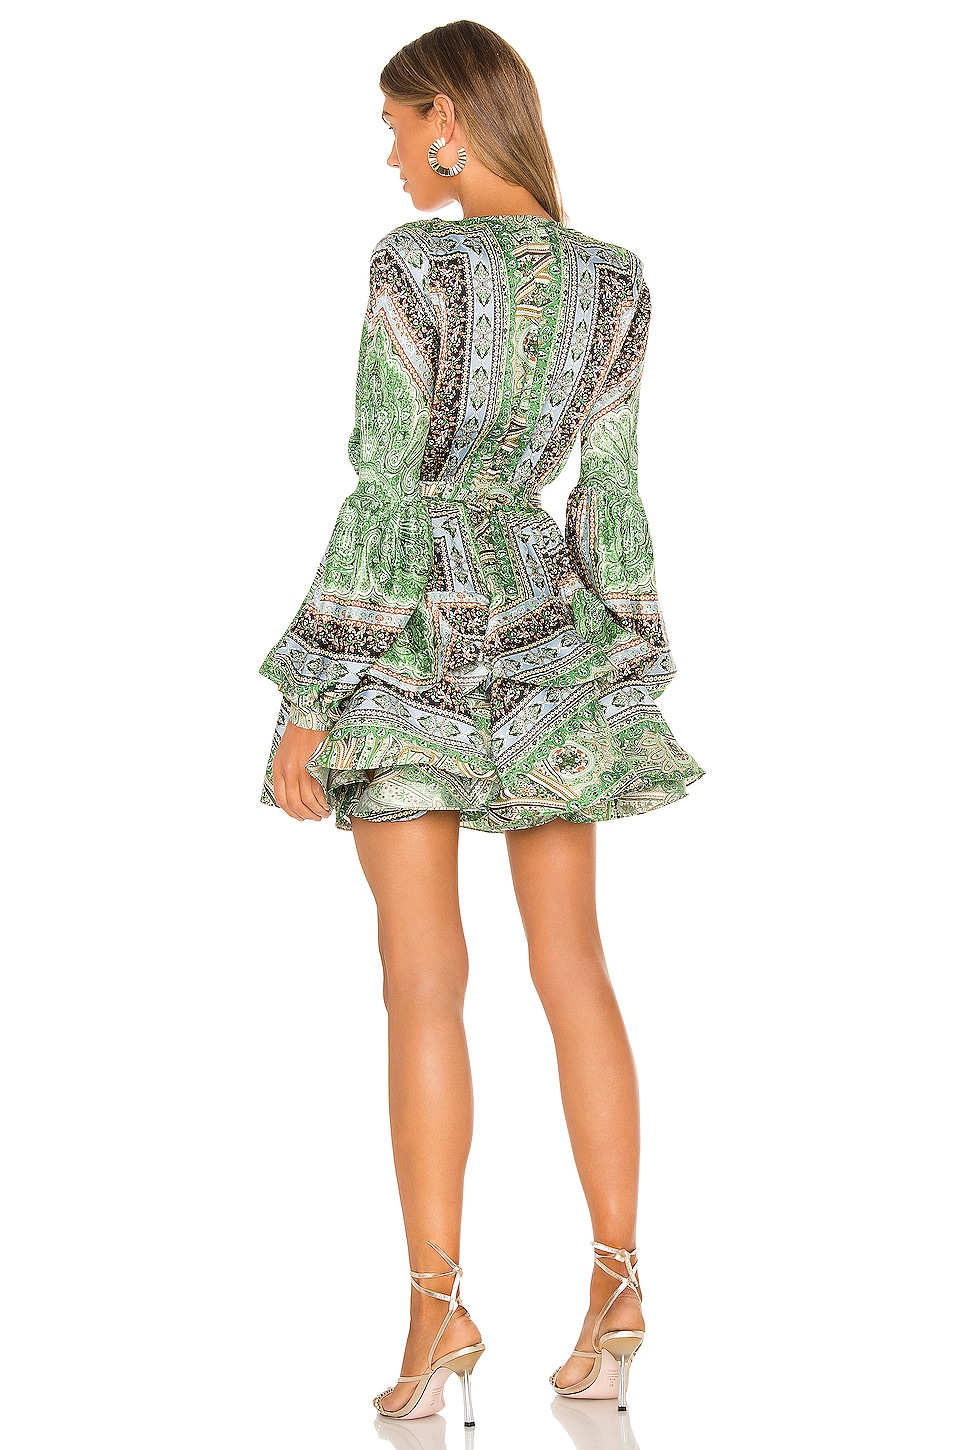 Bedouin Mini Dress, view 3, click to view large image.